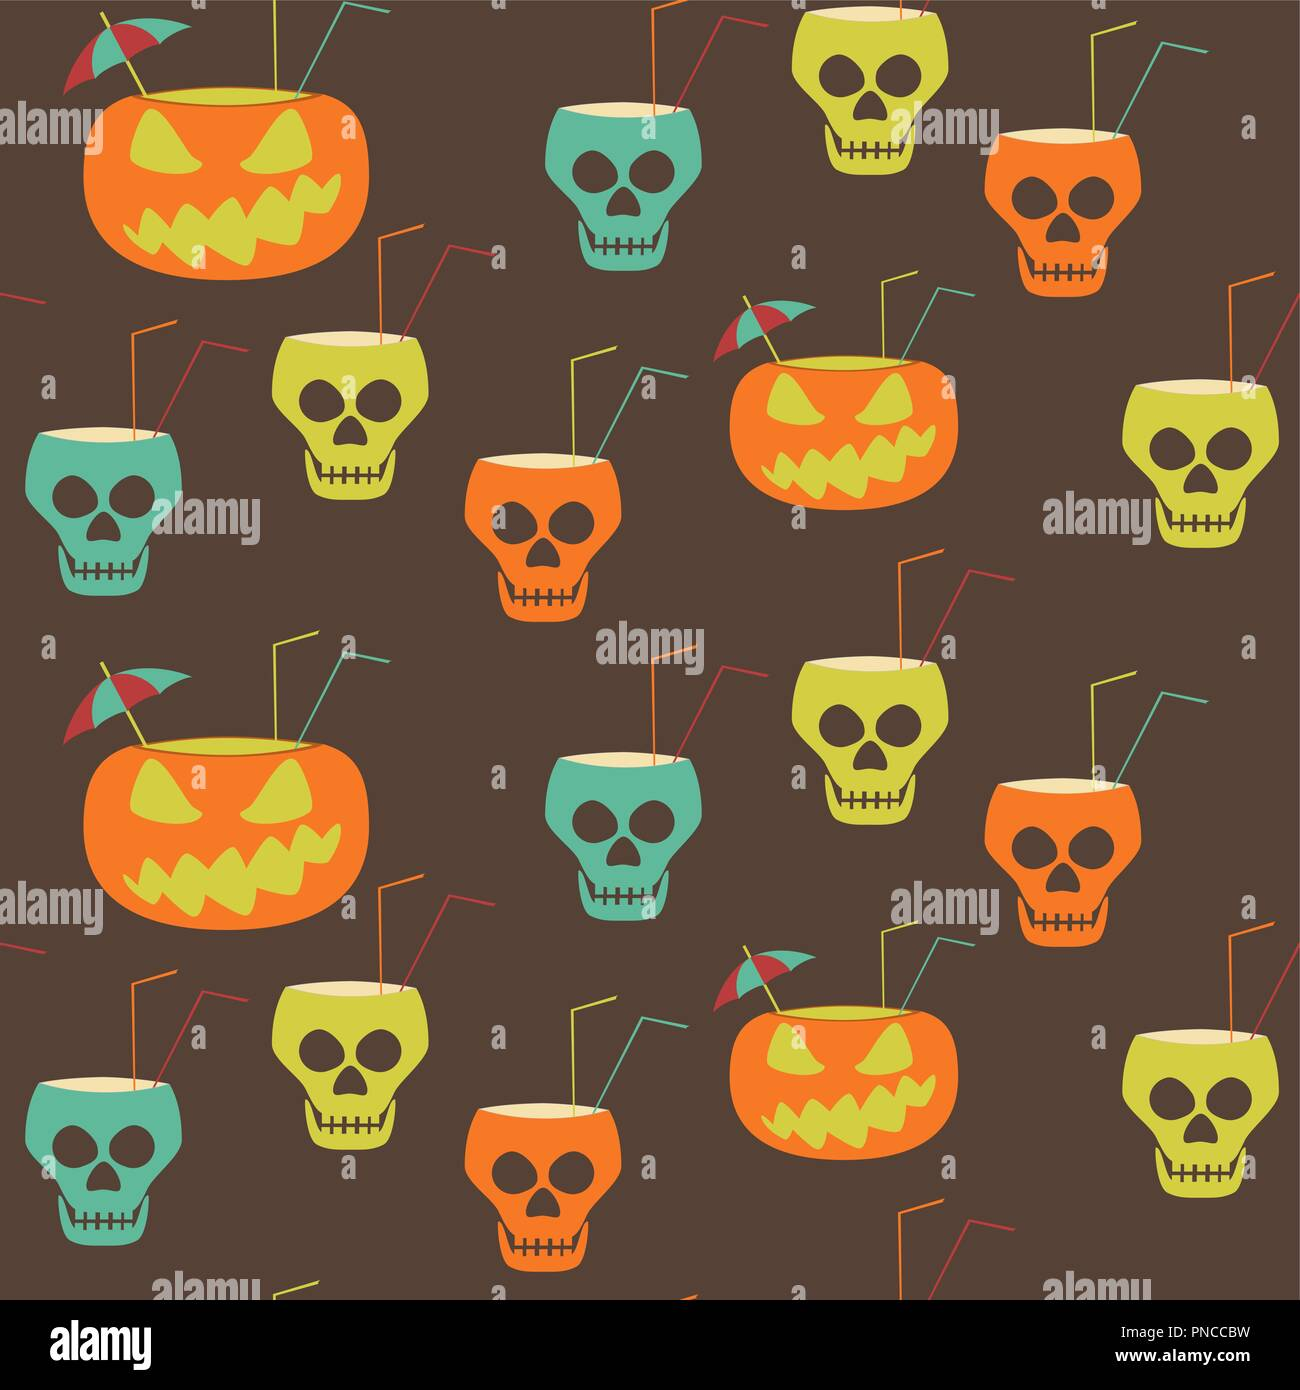 Halloween party seamless pattern. Evil pumpkins and skulls with drinking straws and cocktail umbrellas. Stylish print retro brown, orange, blue, green - Stock Vector